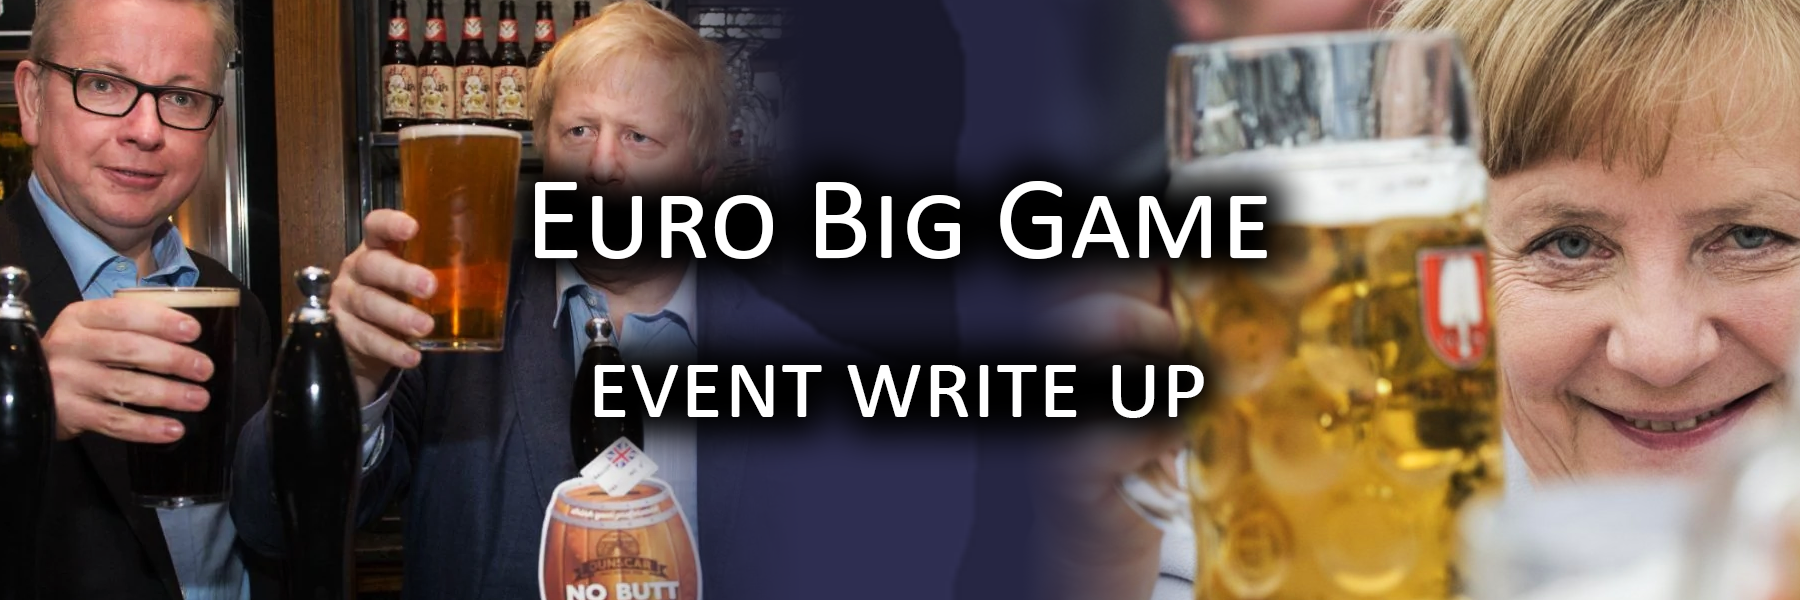 Euro Big Game writeup